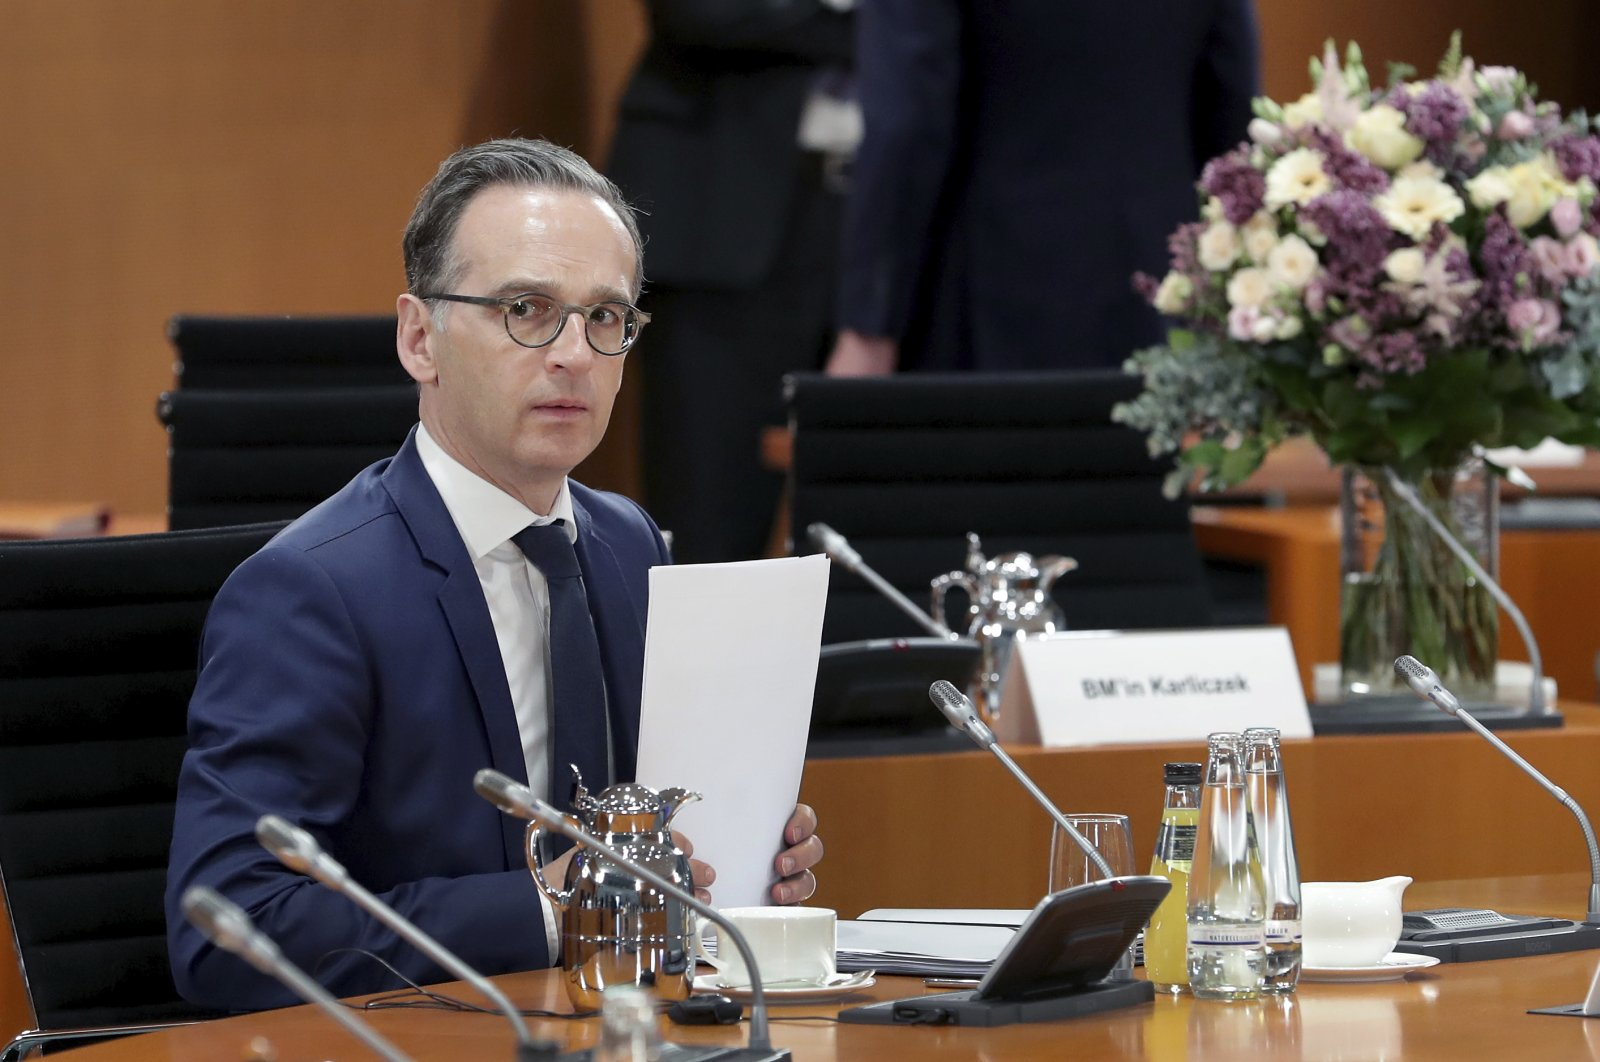 German Foreign Minister Heiko Maas holds a piece of paper prior to the weekly Cabinet meeting at the Chancellery in Berlin, Germany, April 29, 2020. (AP Photo)